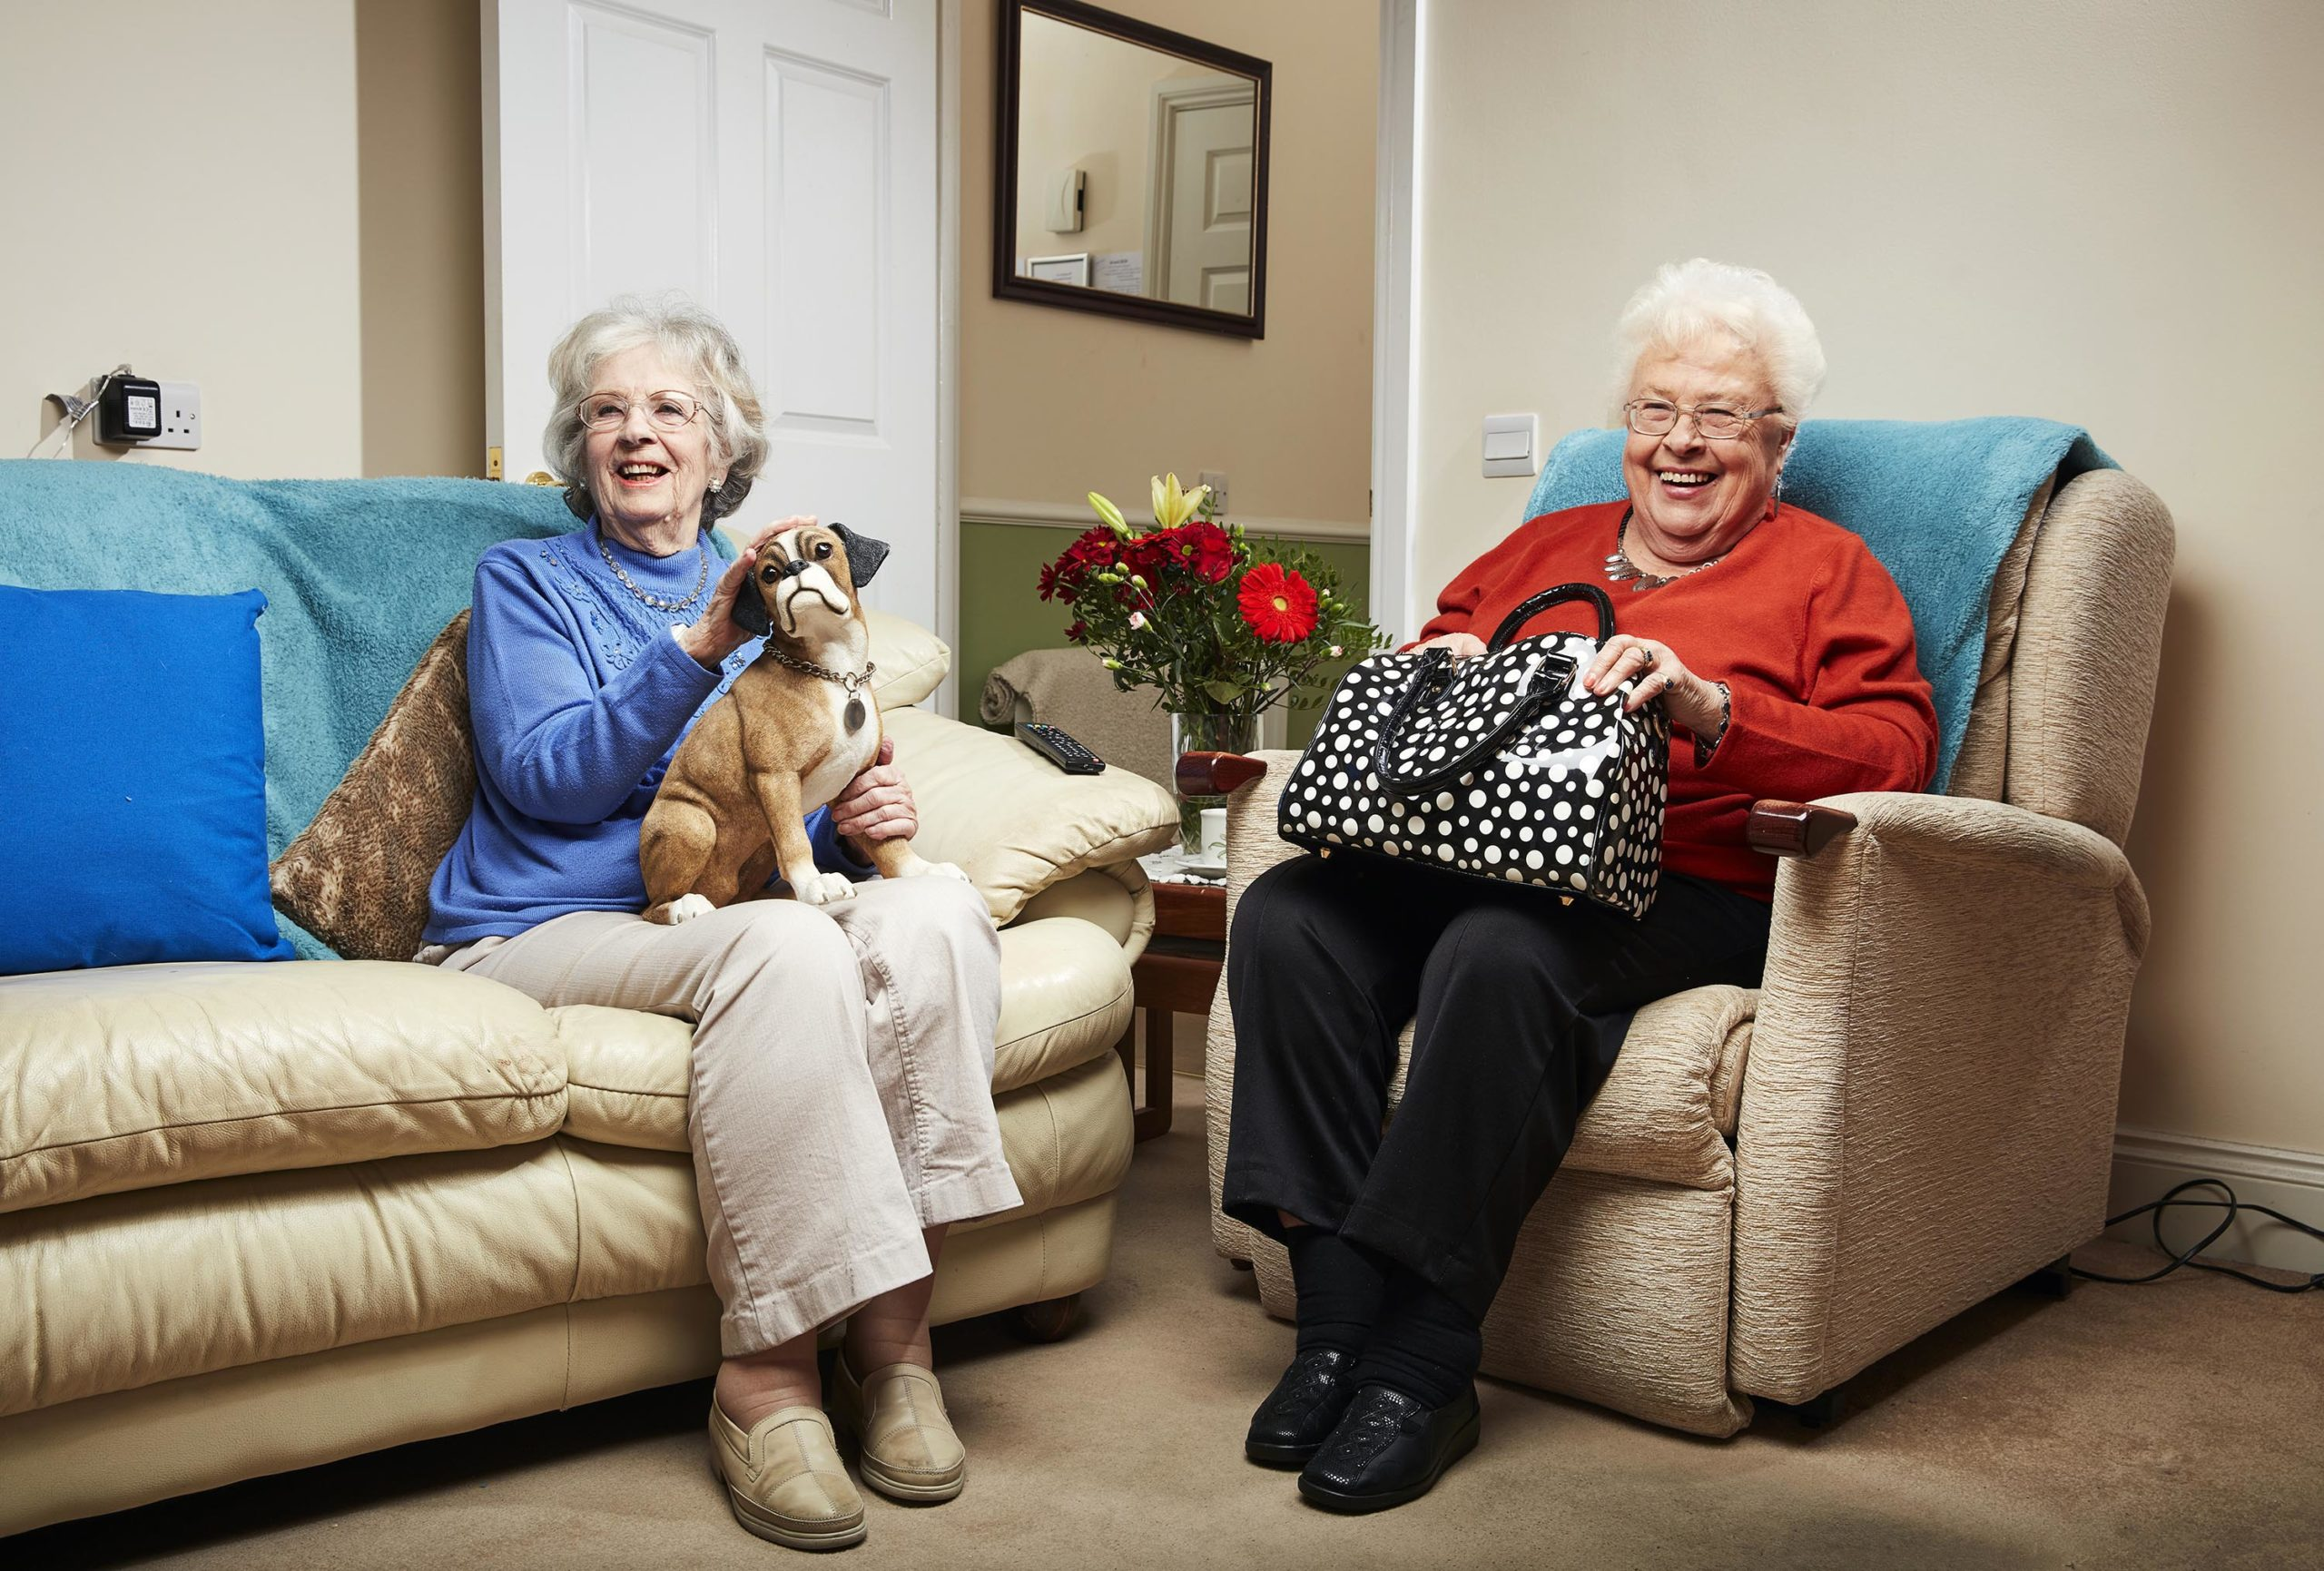 Googlebox viewers were thrilled to see Mary and Marina return